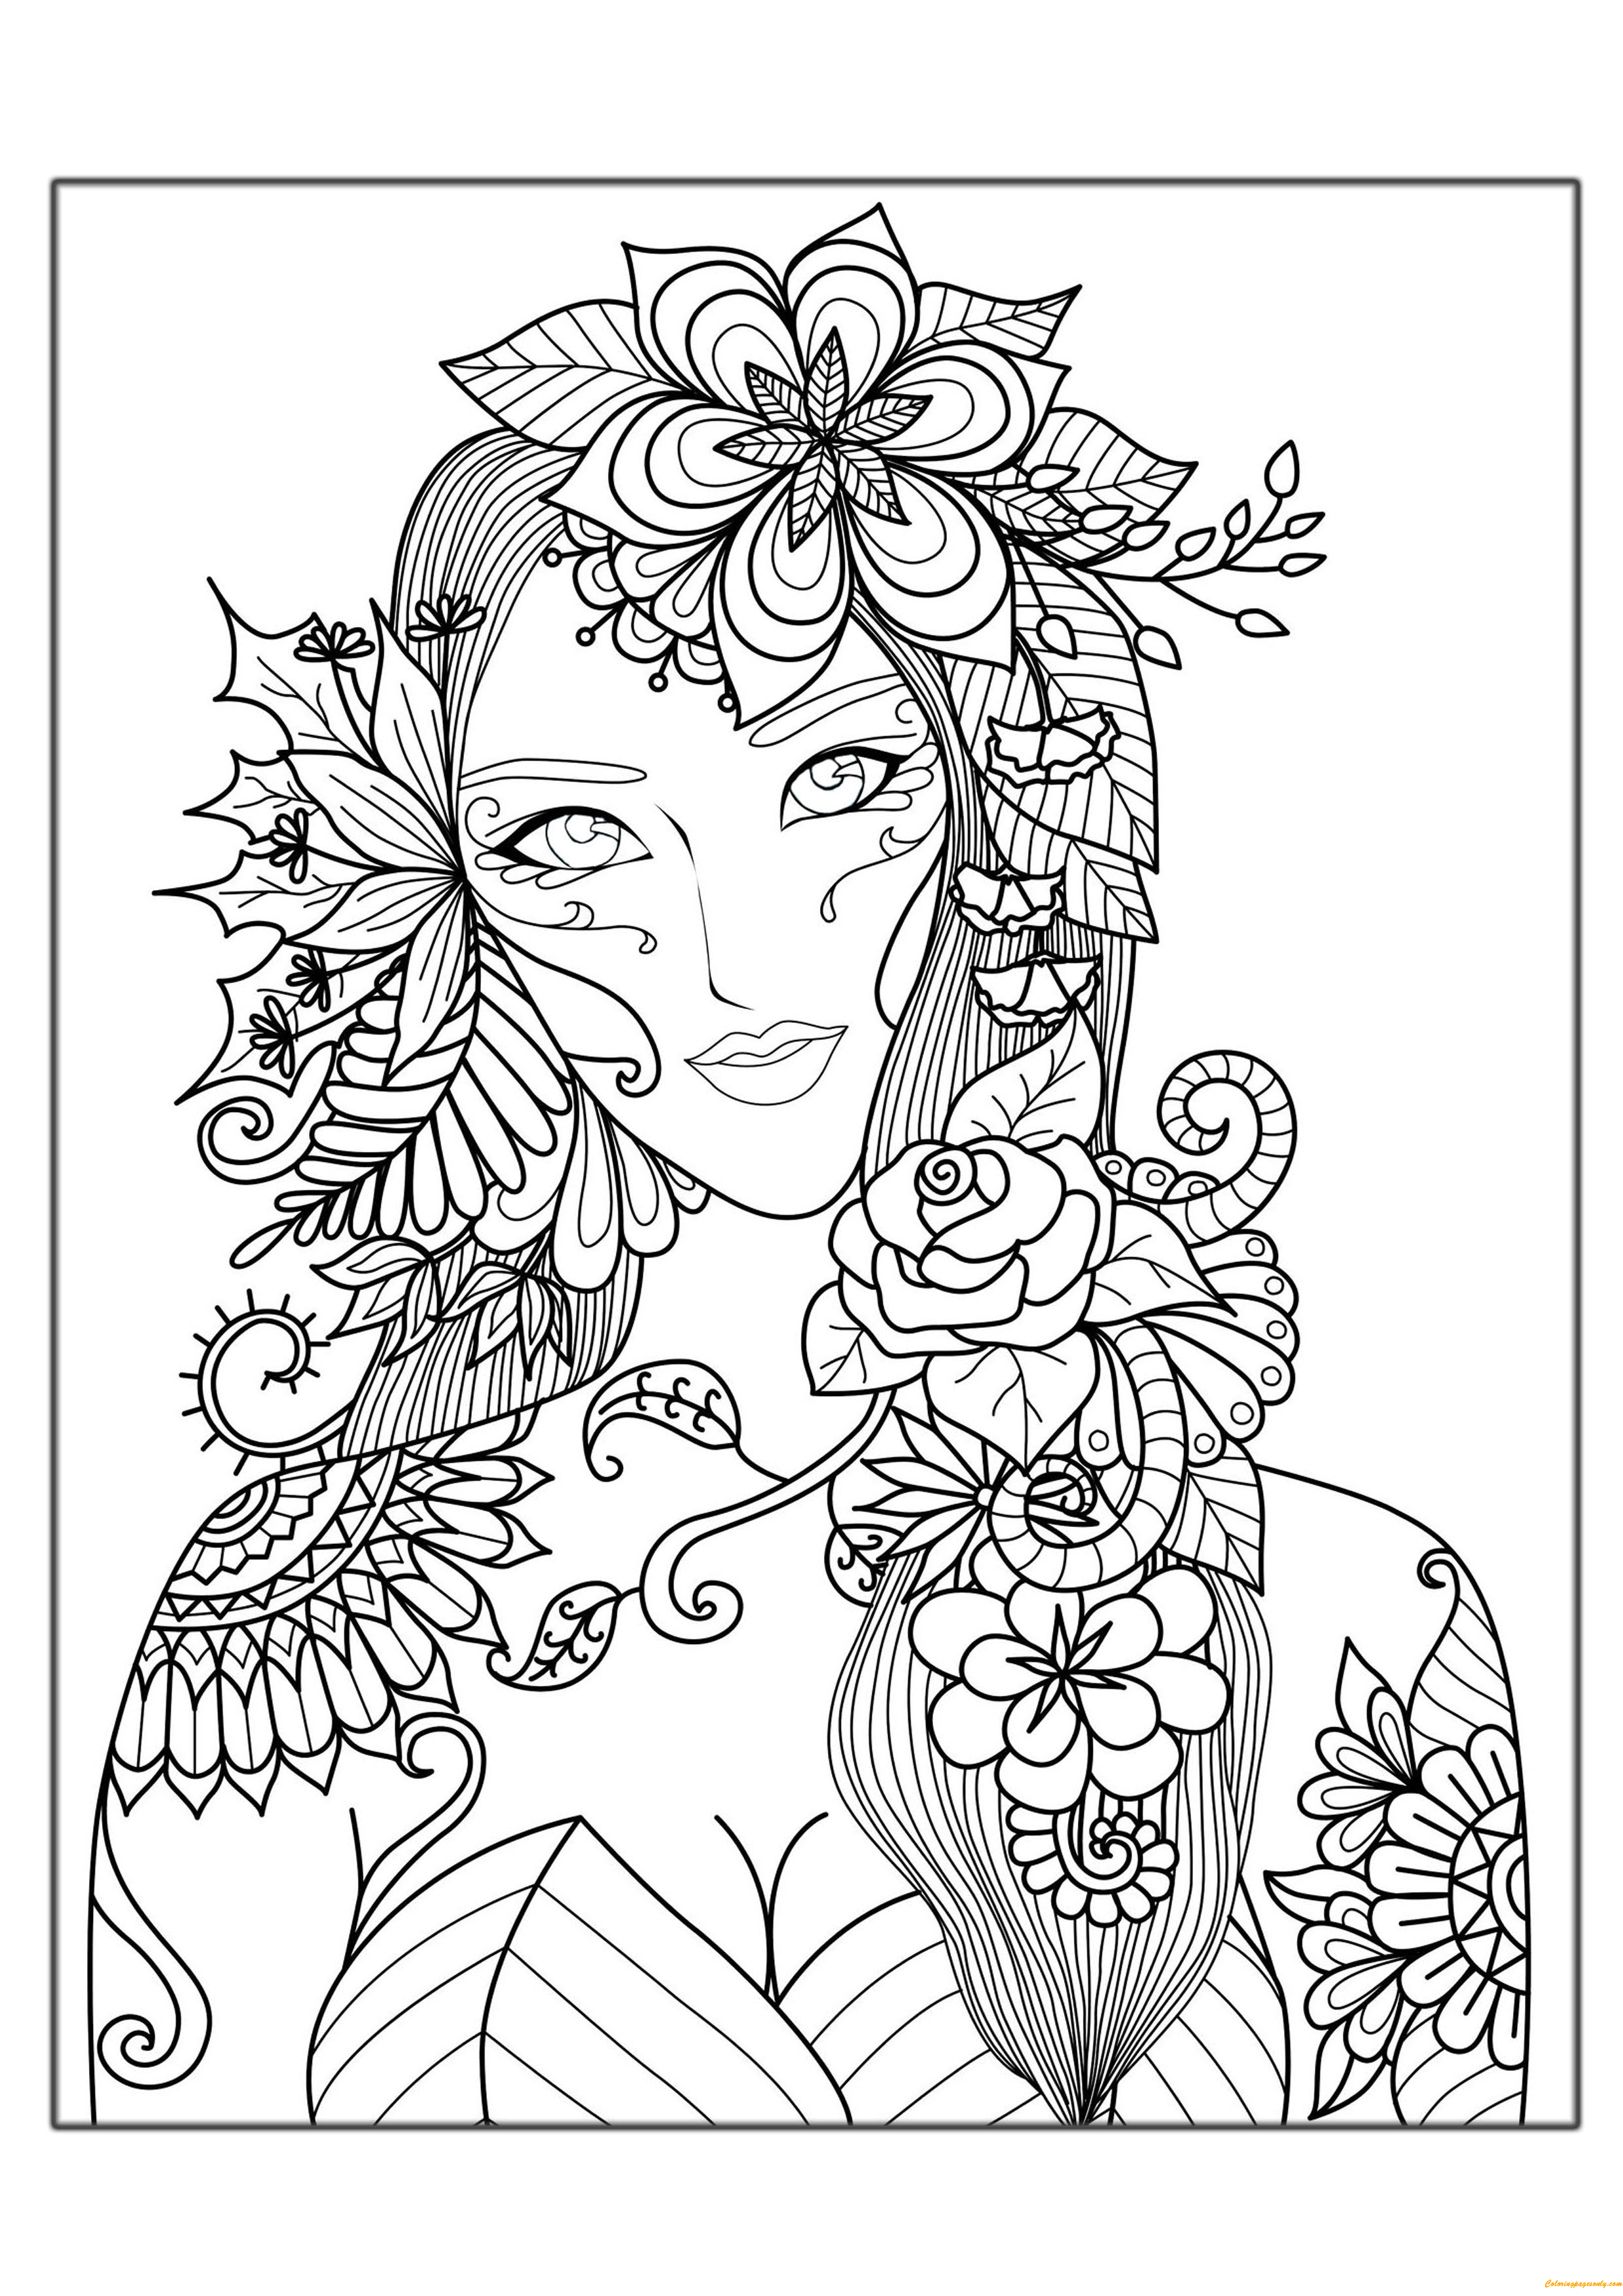 free girl coloring pages to print flower girl coloring pages hard coloring pages free girl free coloring to print pages